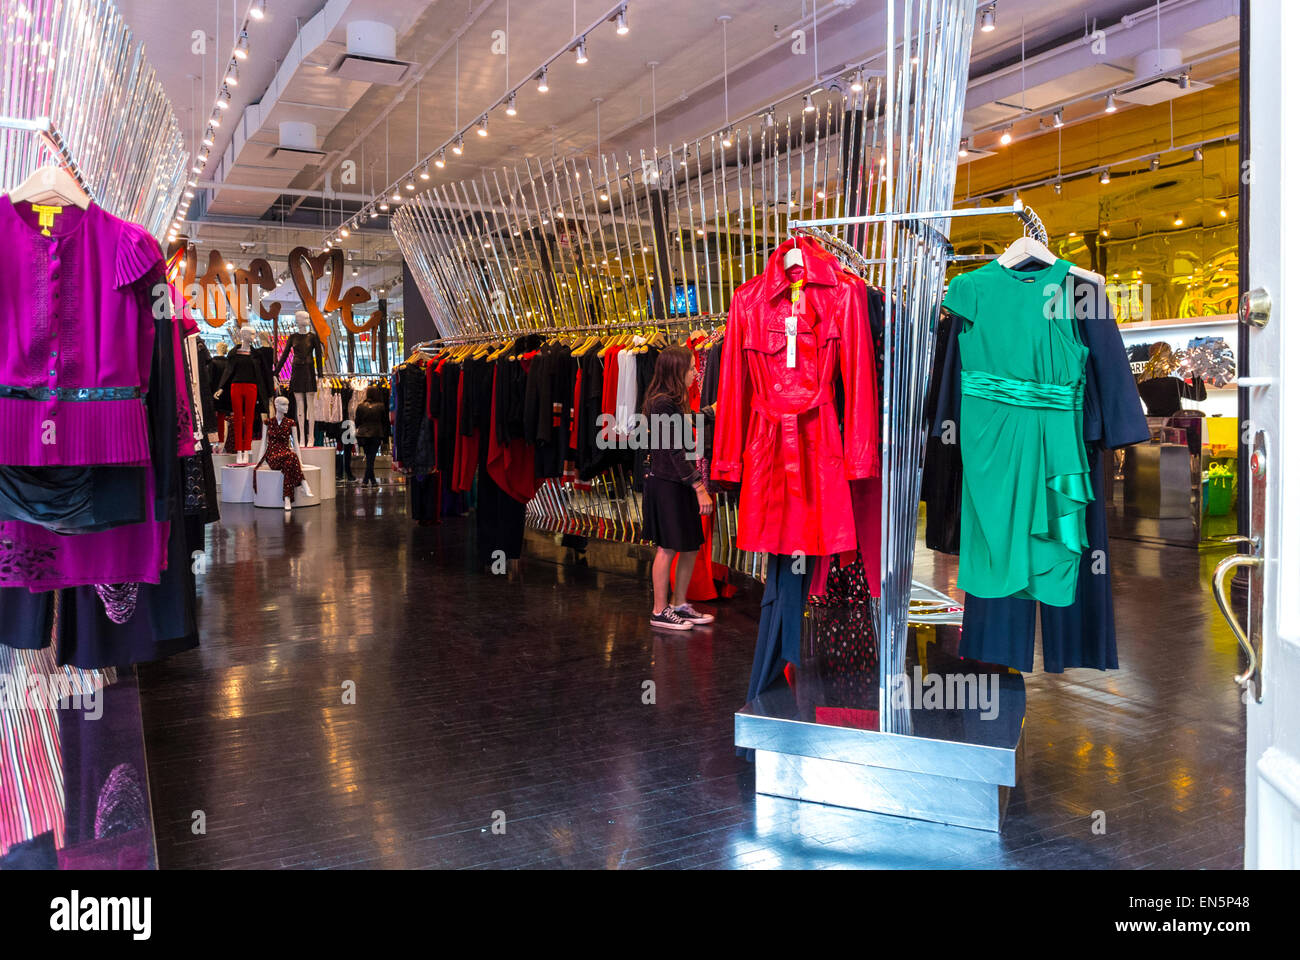 New york fashion clothing store